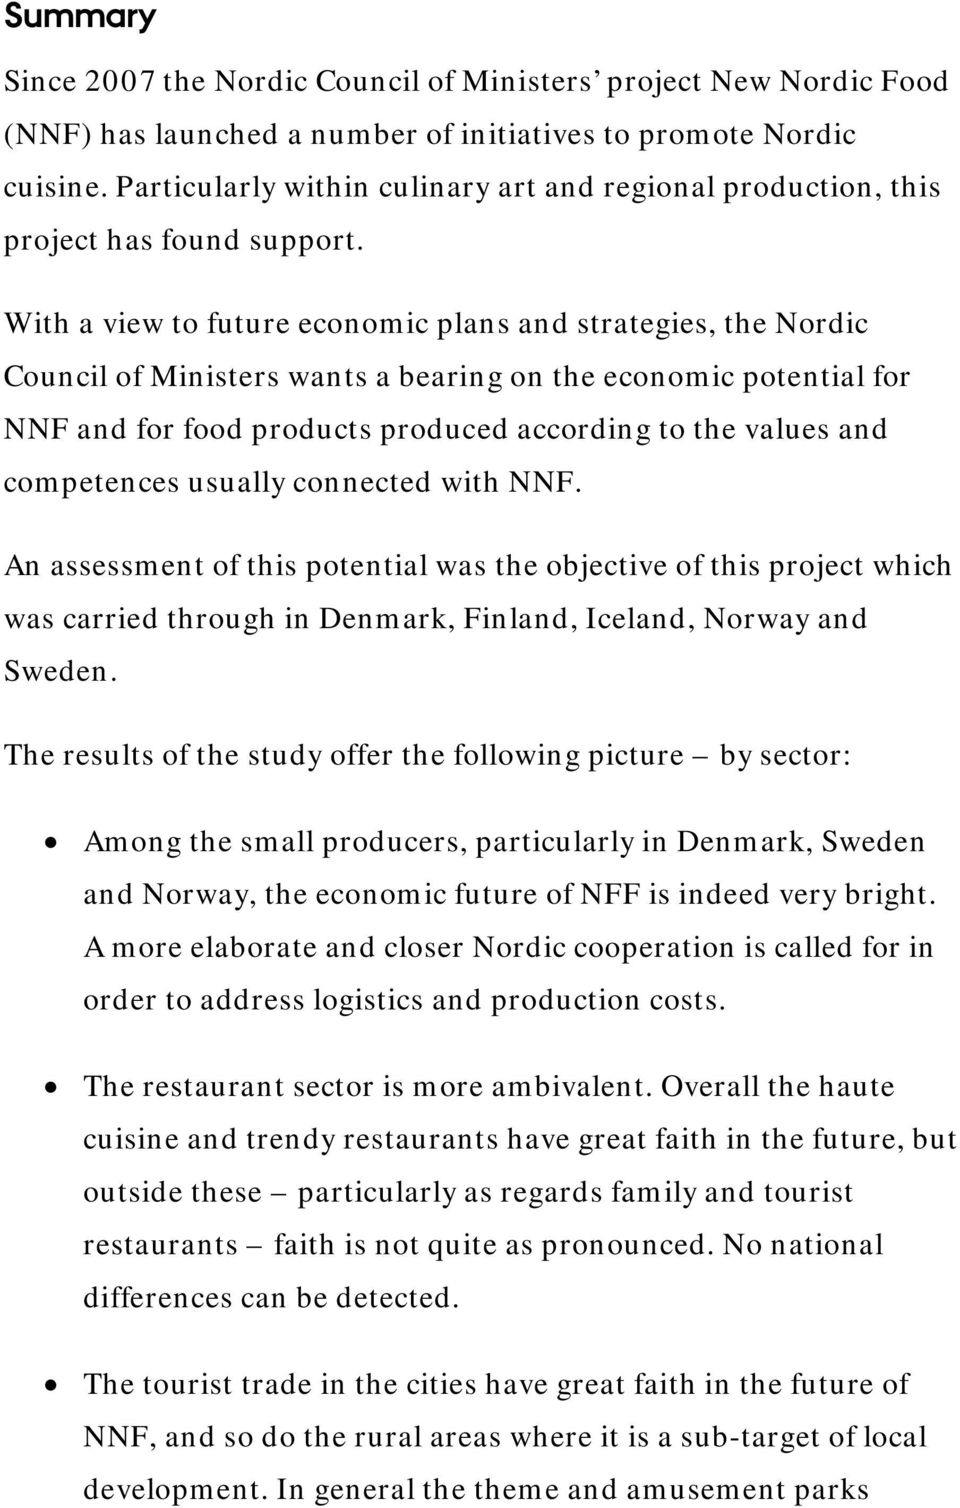 With a view to future economic plans and strategies, the Nordic Council of Ministers wants a bearing on the economic potential for NNF and for food products produced according to the values and